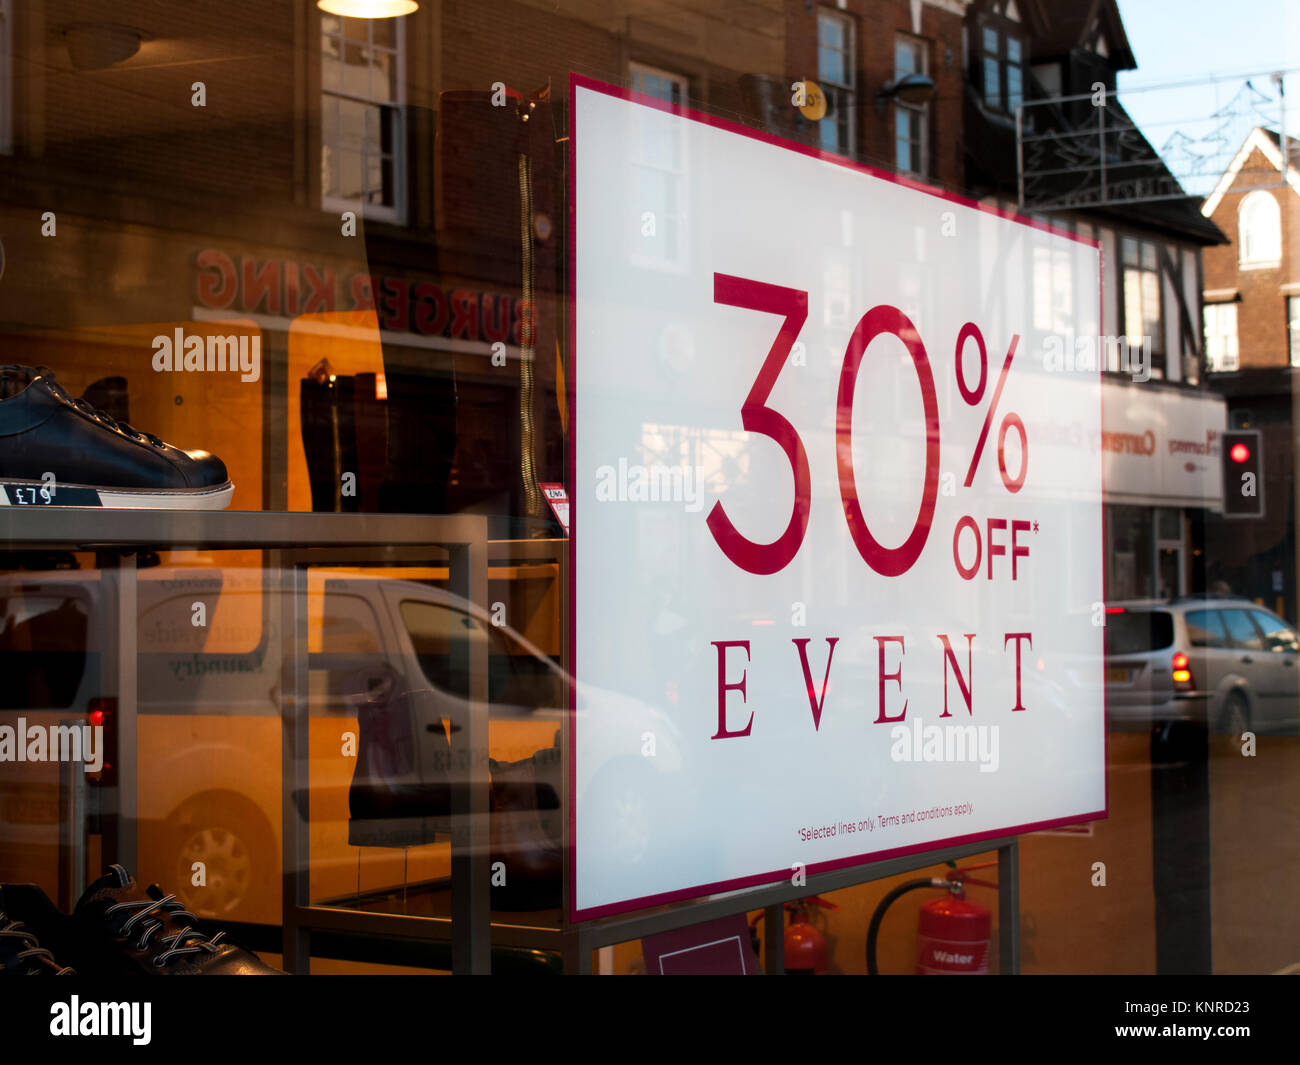 30 percent event sign advertising price discounts in shoe shop window - Stock Image